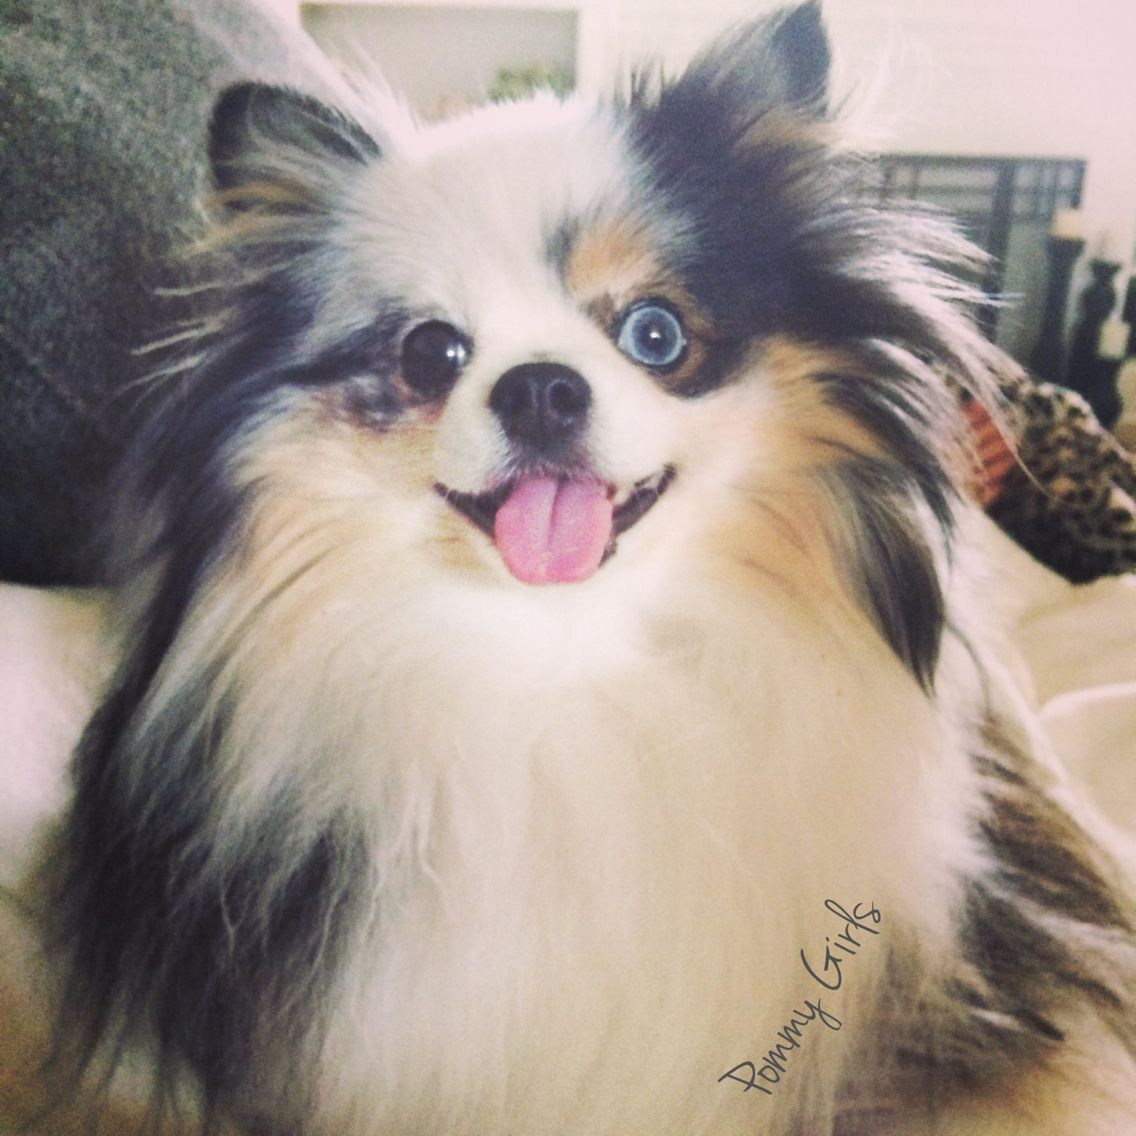 Search Pommy Girls on Facebook to see Bella!   .  .  .  Blue Merle Pomeranian.  Blue eyes,  parti pom, dog, pet, animal, fluffy, Tri color,  black & white.  Pure bred, toy breed.